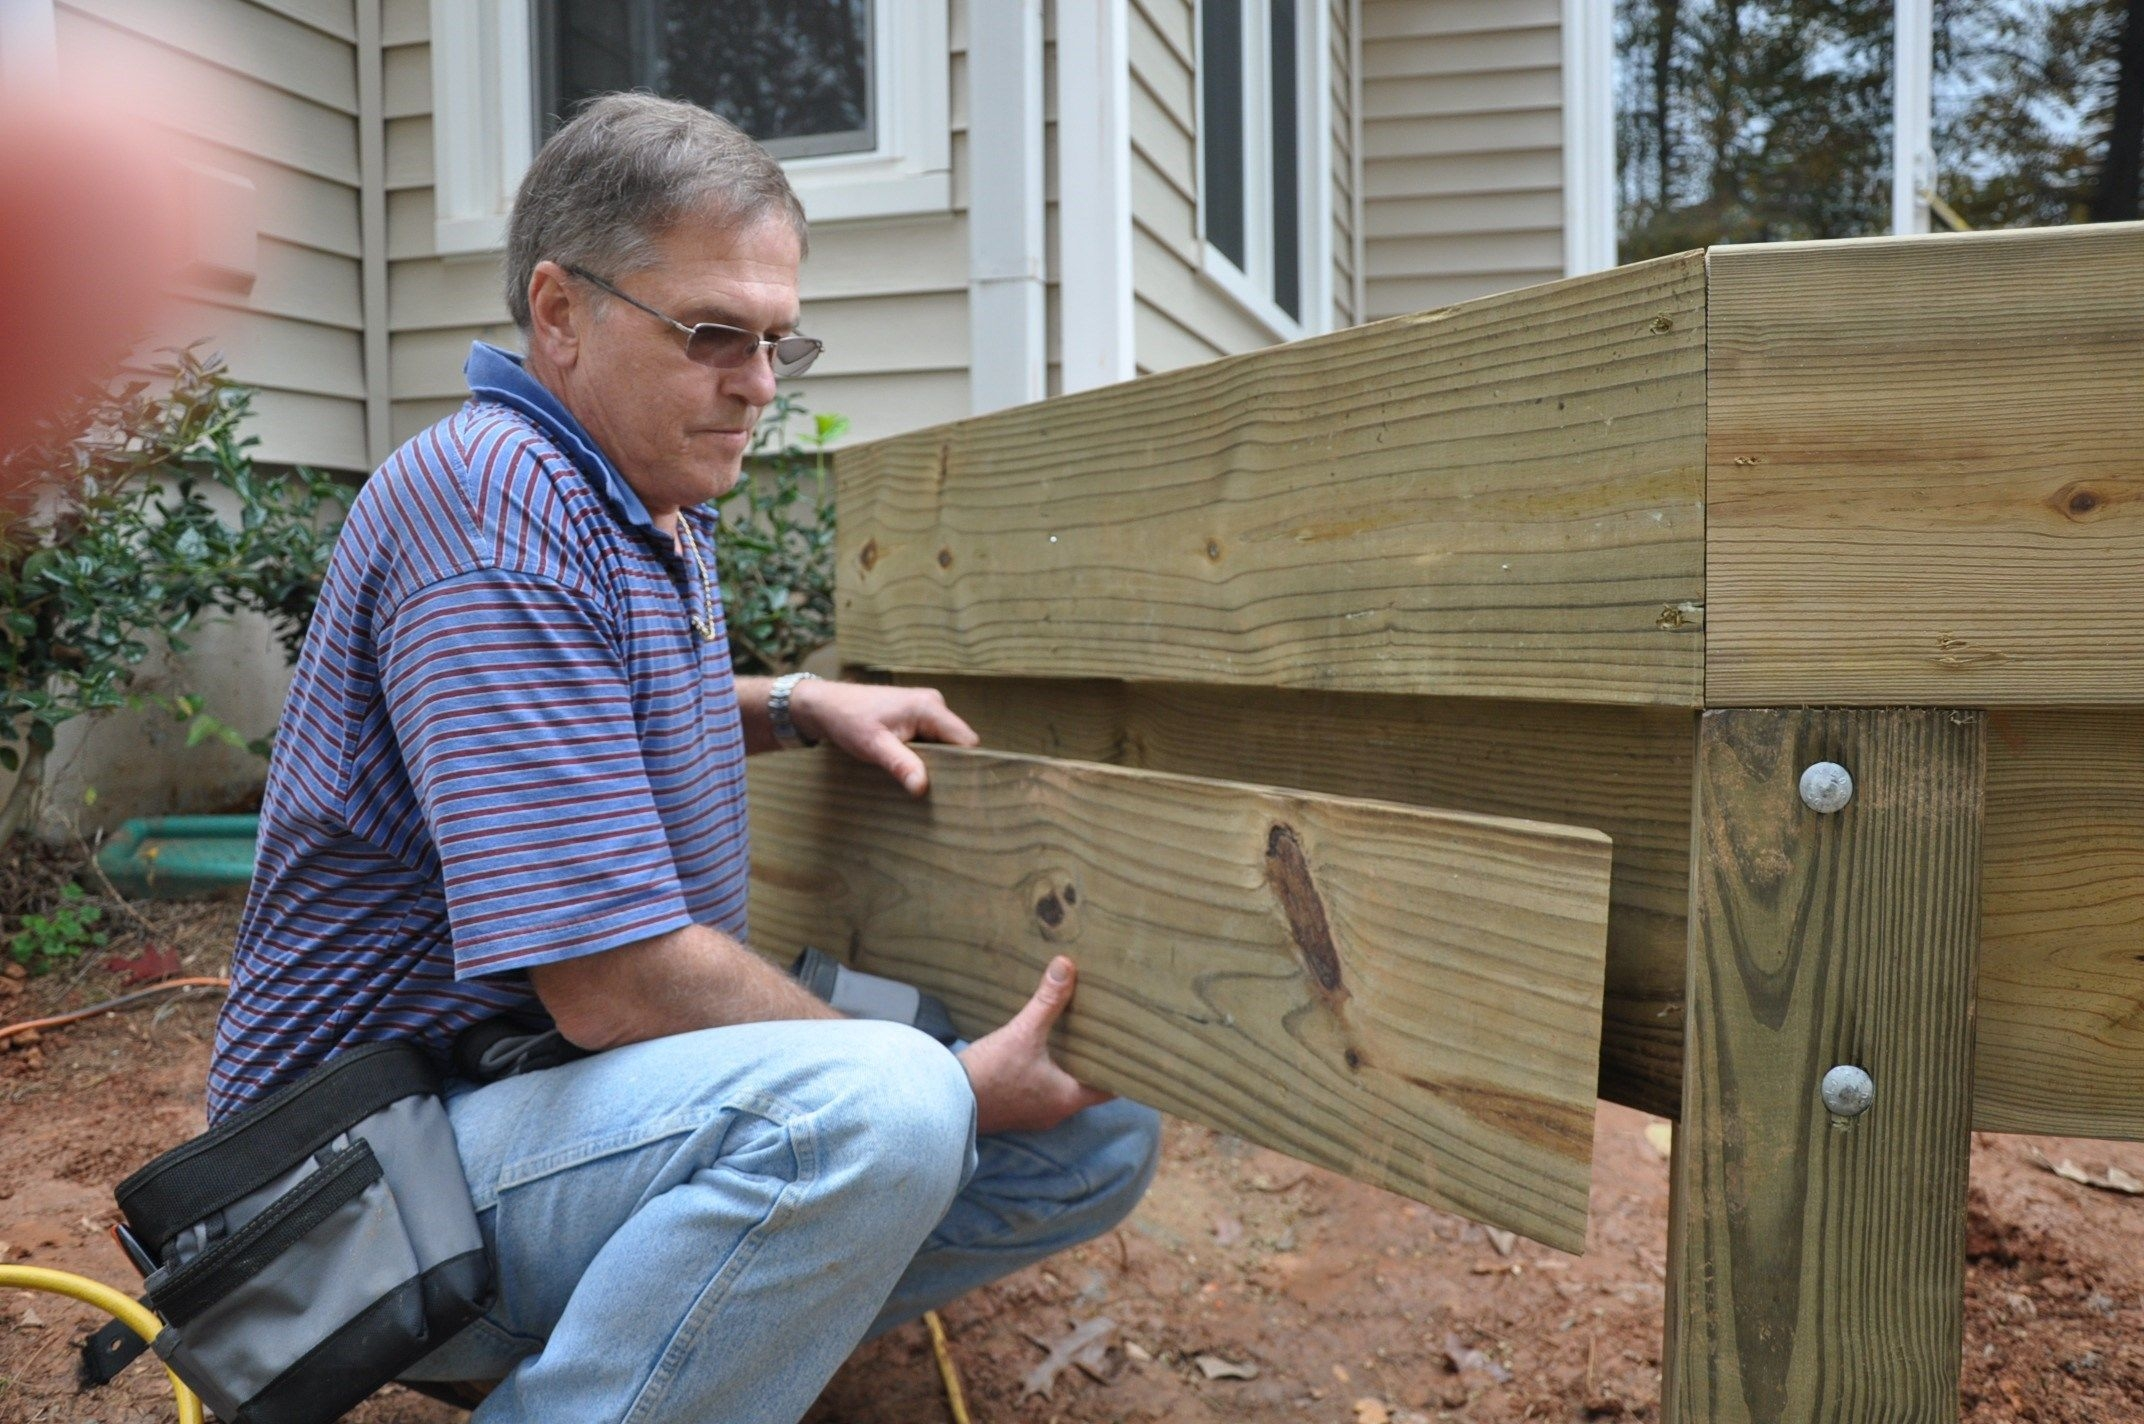 Stair Stringer Attachment Decks Com | 3 Step Outdoor Stairs | Diy | Portable | Entrance | Wide | Curved Front Porch